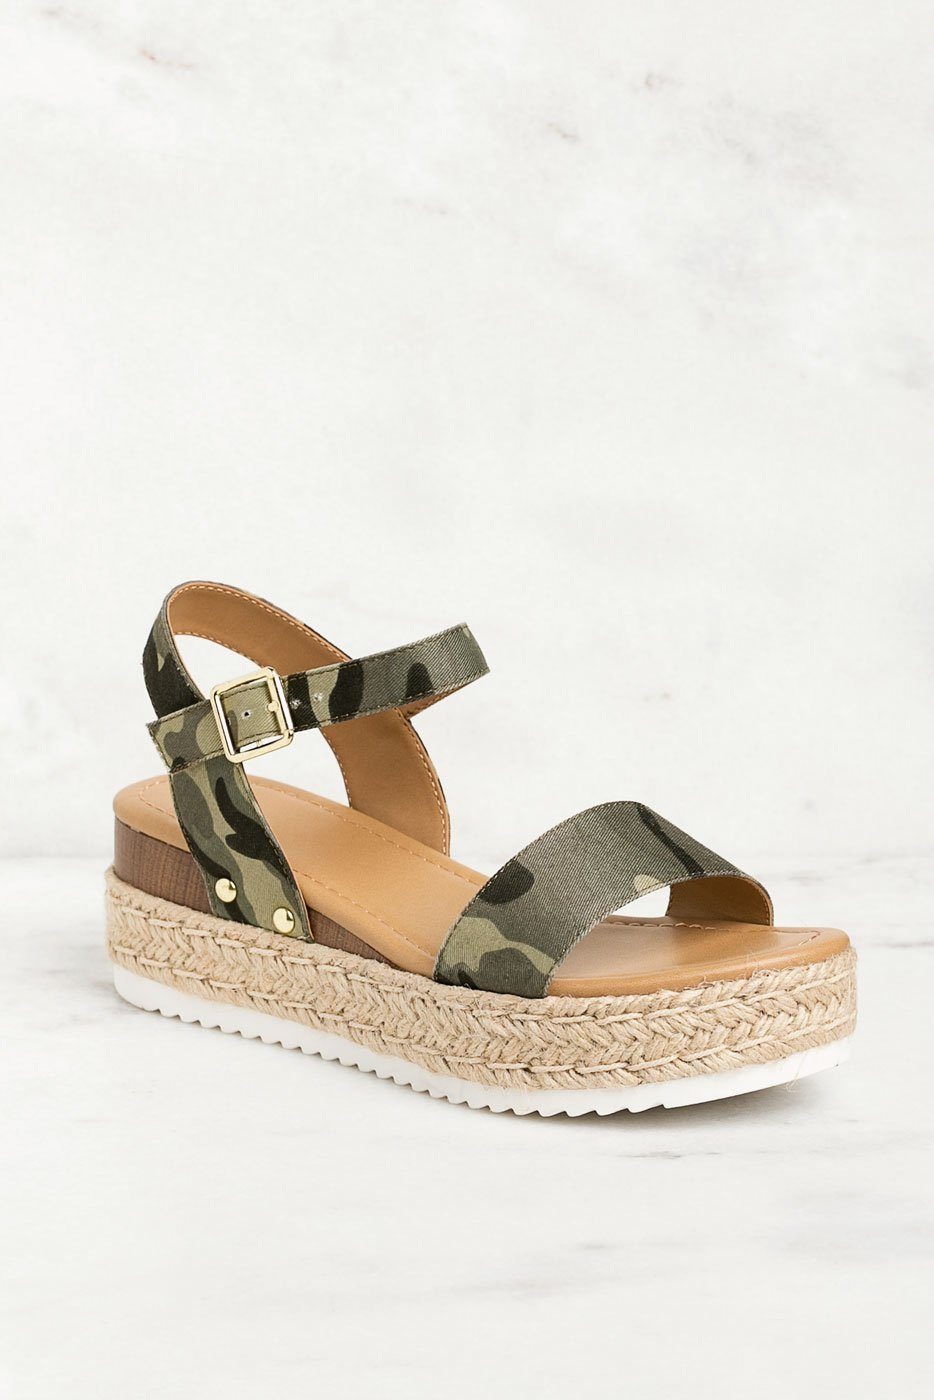 Sandals Walk It Camo Platform Off UzMpVqS